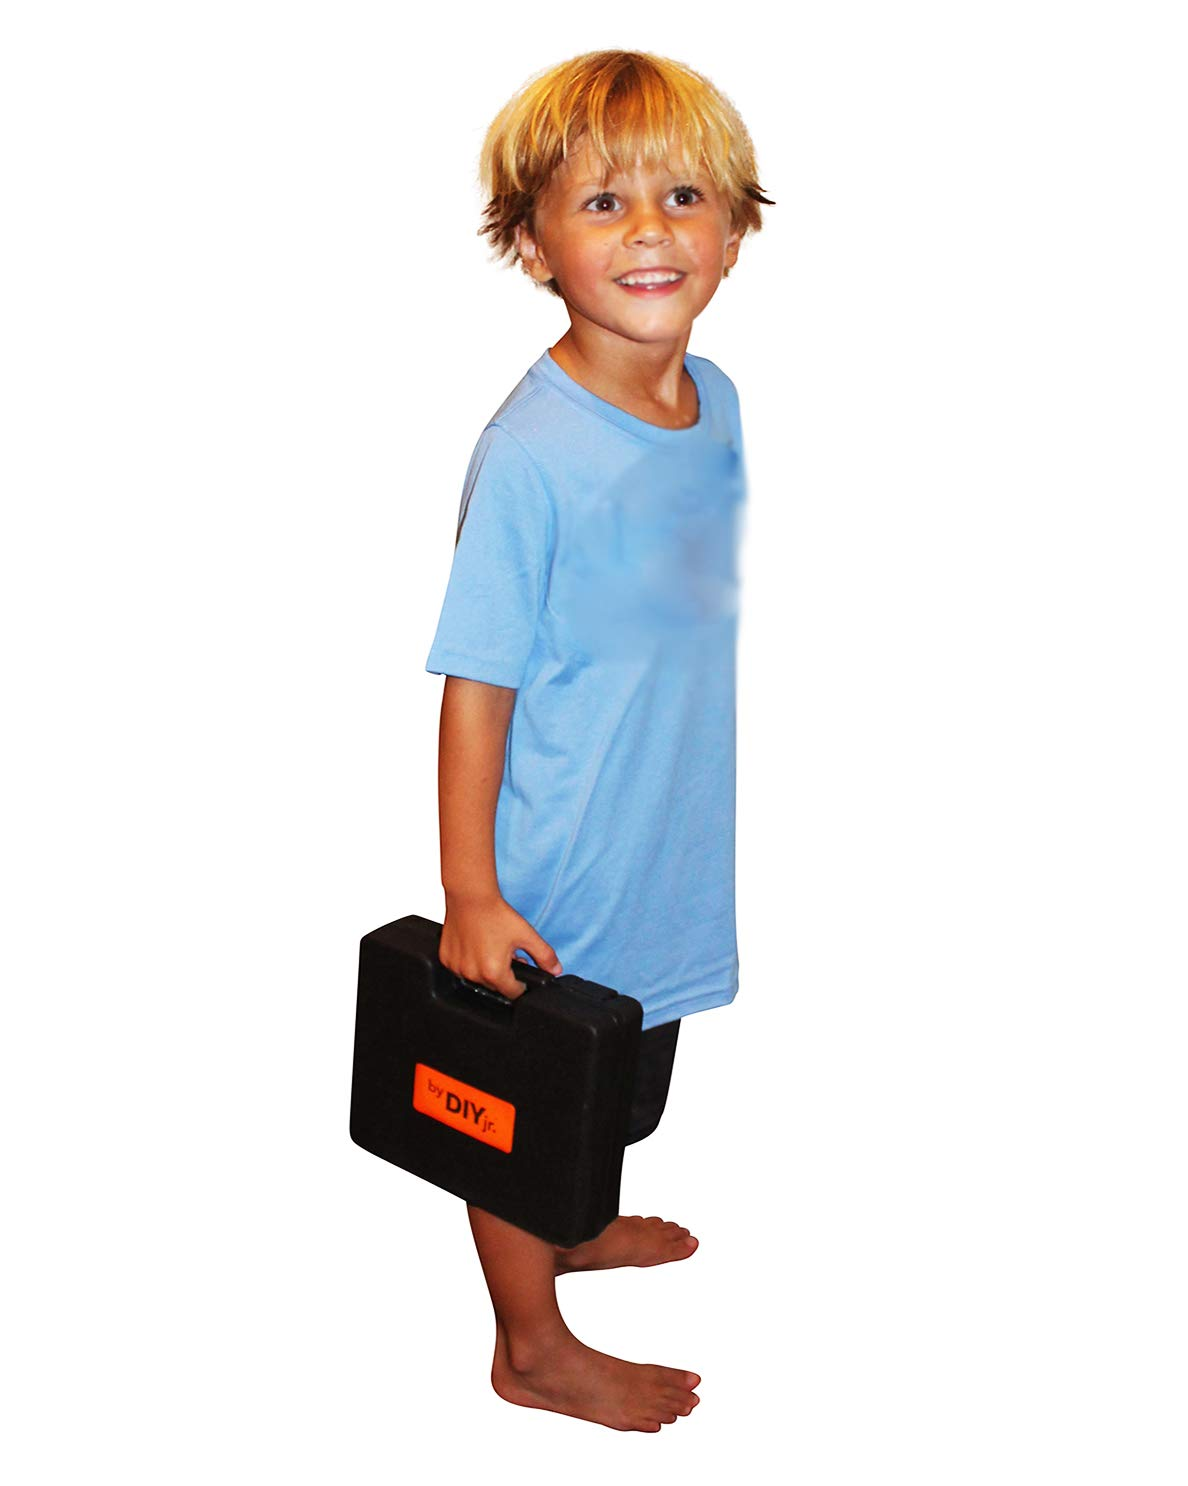 Lightweight LED Light Carrying Case My First Power Drill Set 5 Year Warranty Child Size Kit Includes Bits Charger Real Cordless Drill for Boys and Girls